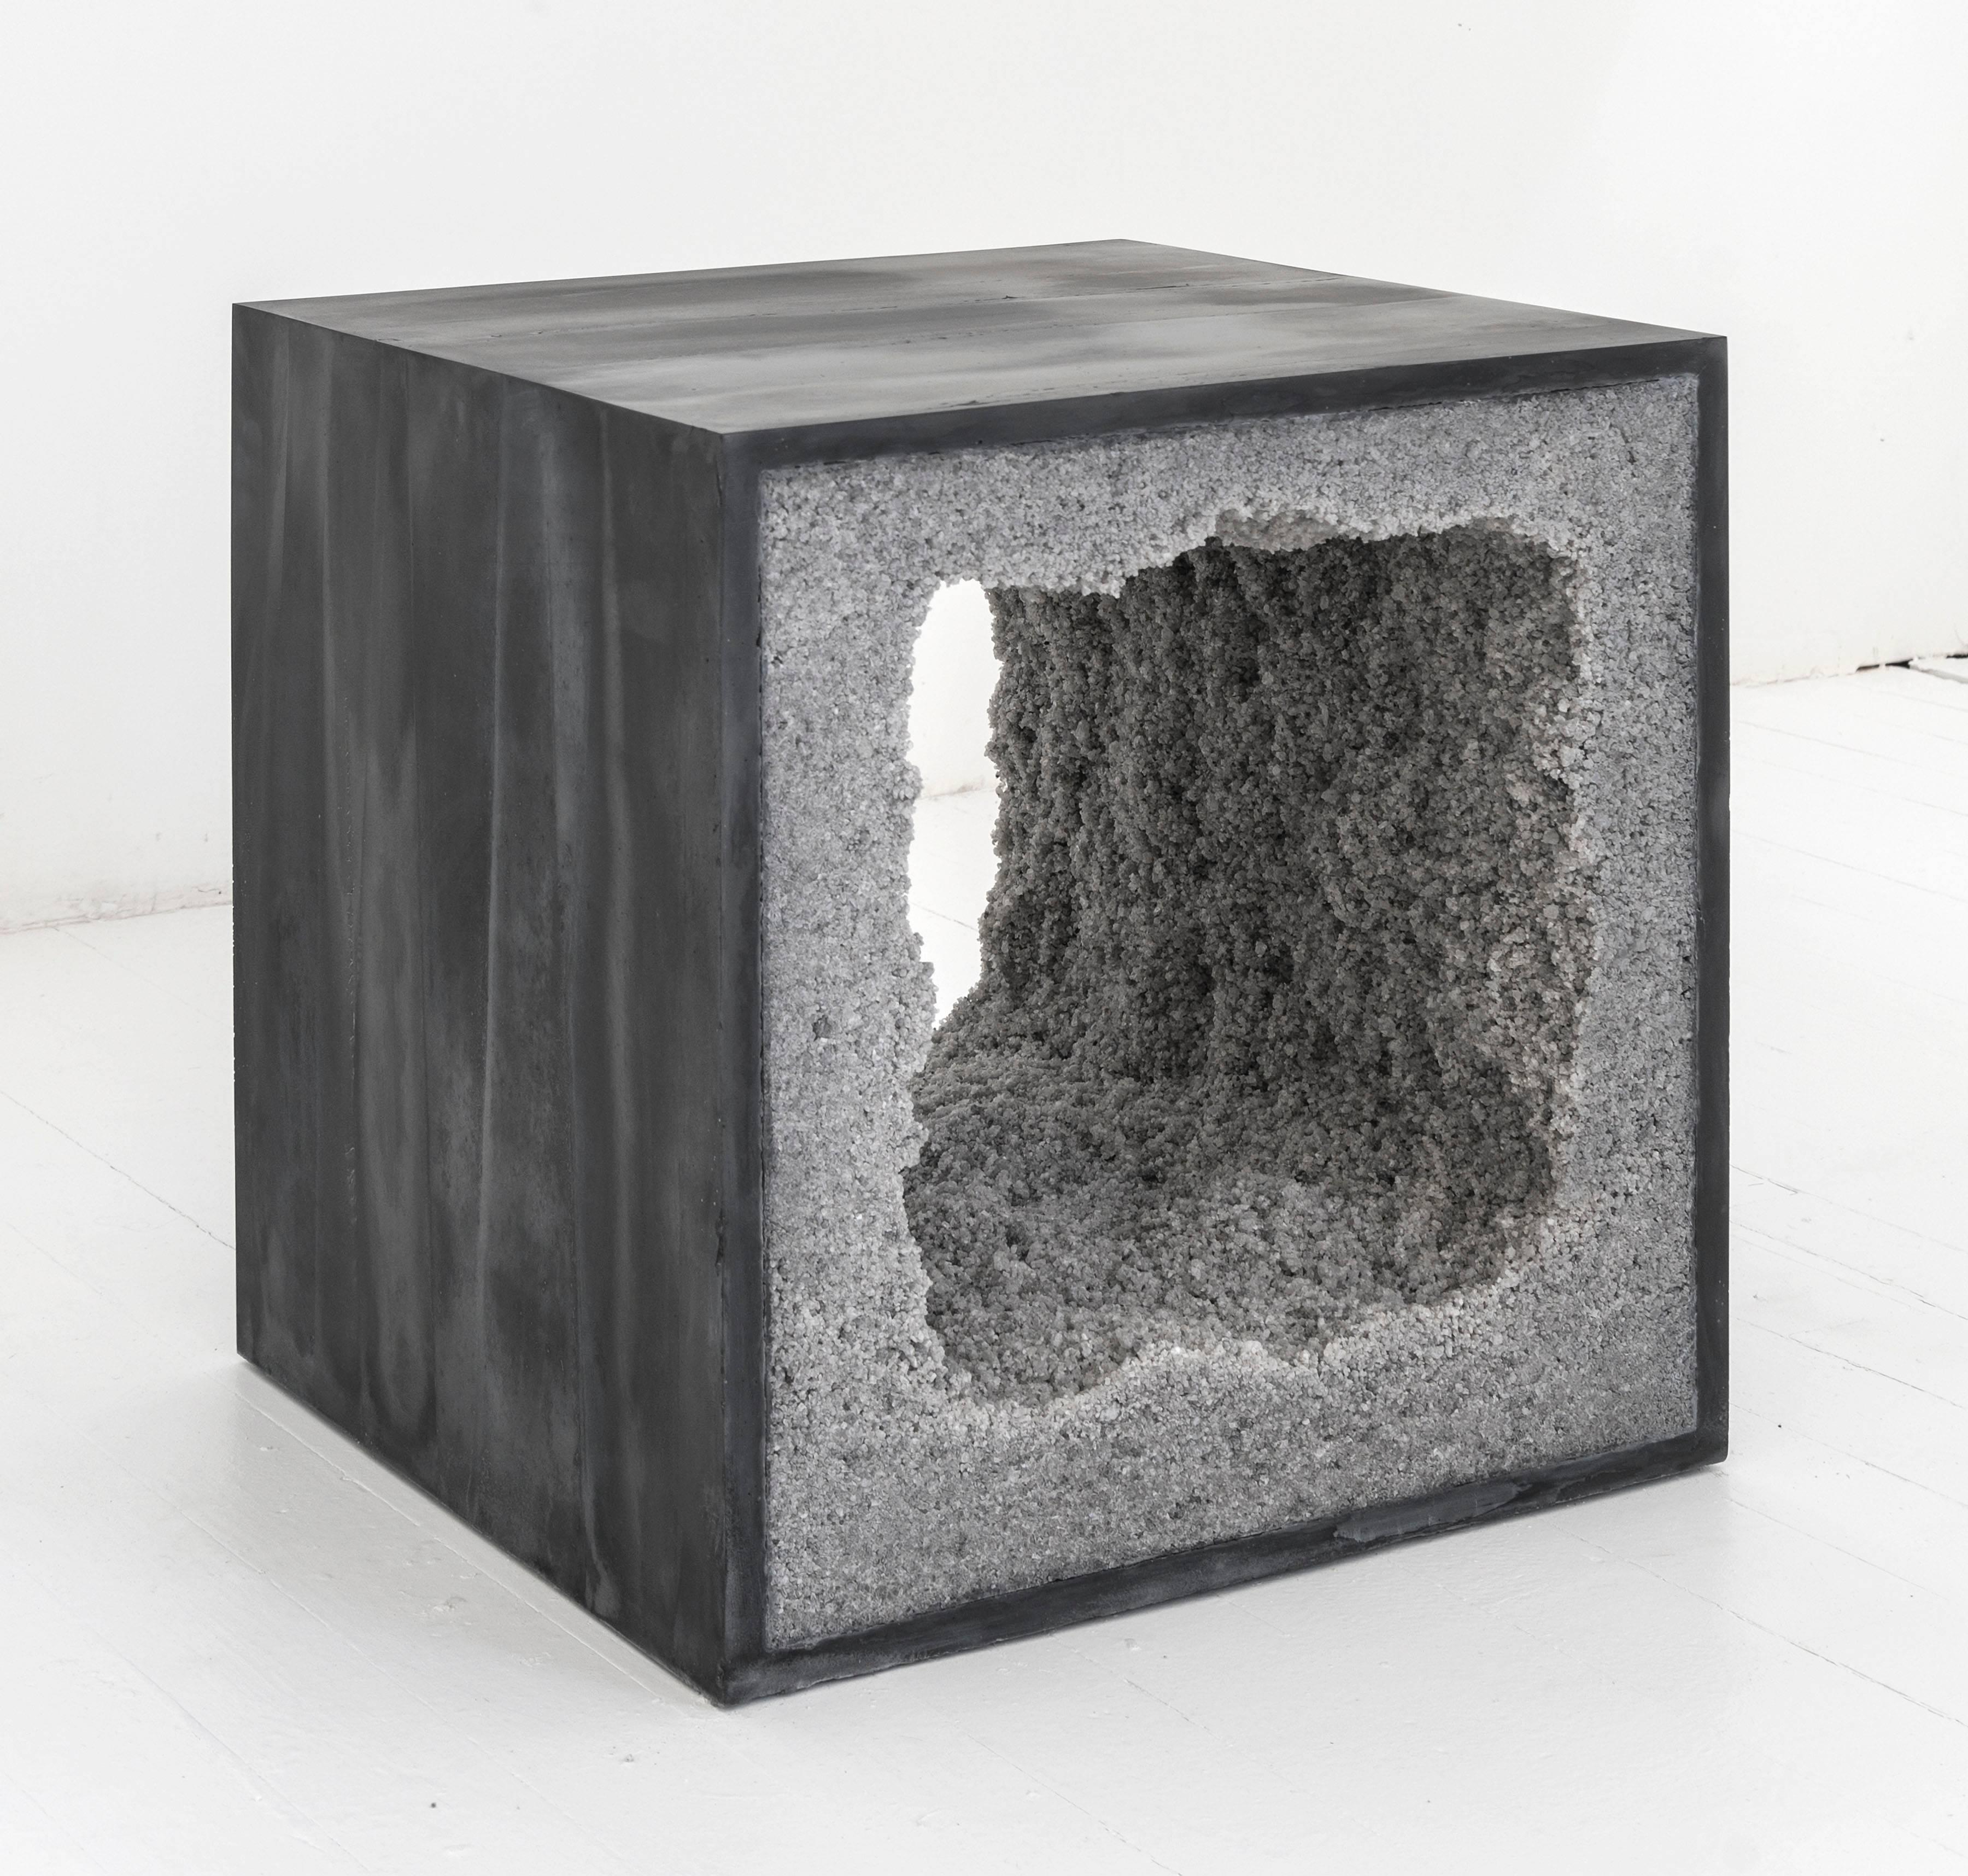 Cement side table Concrete Block Composed From Combination Of Materials The Angular Side Table Consists Of Hand 1stdibs Strata Side Table Black Cement And Grey Rock Salt By Fernando